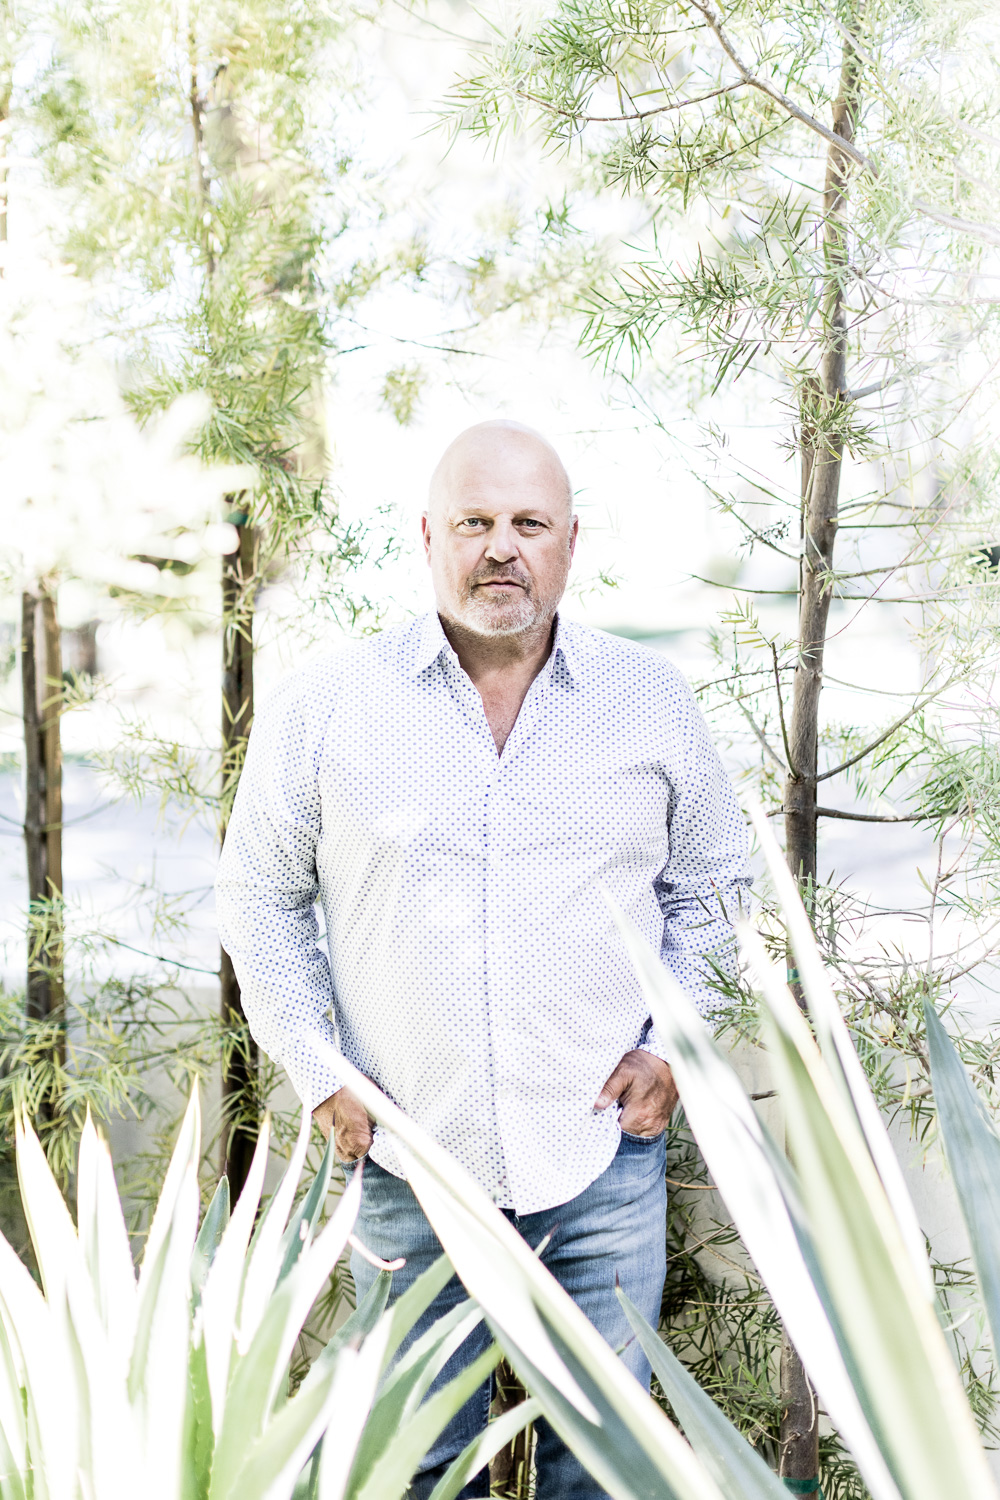 Michael Chiklis, actor, producer & director